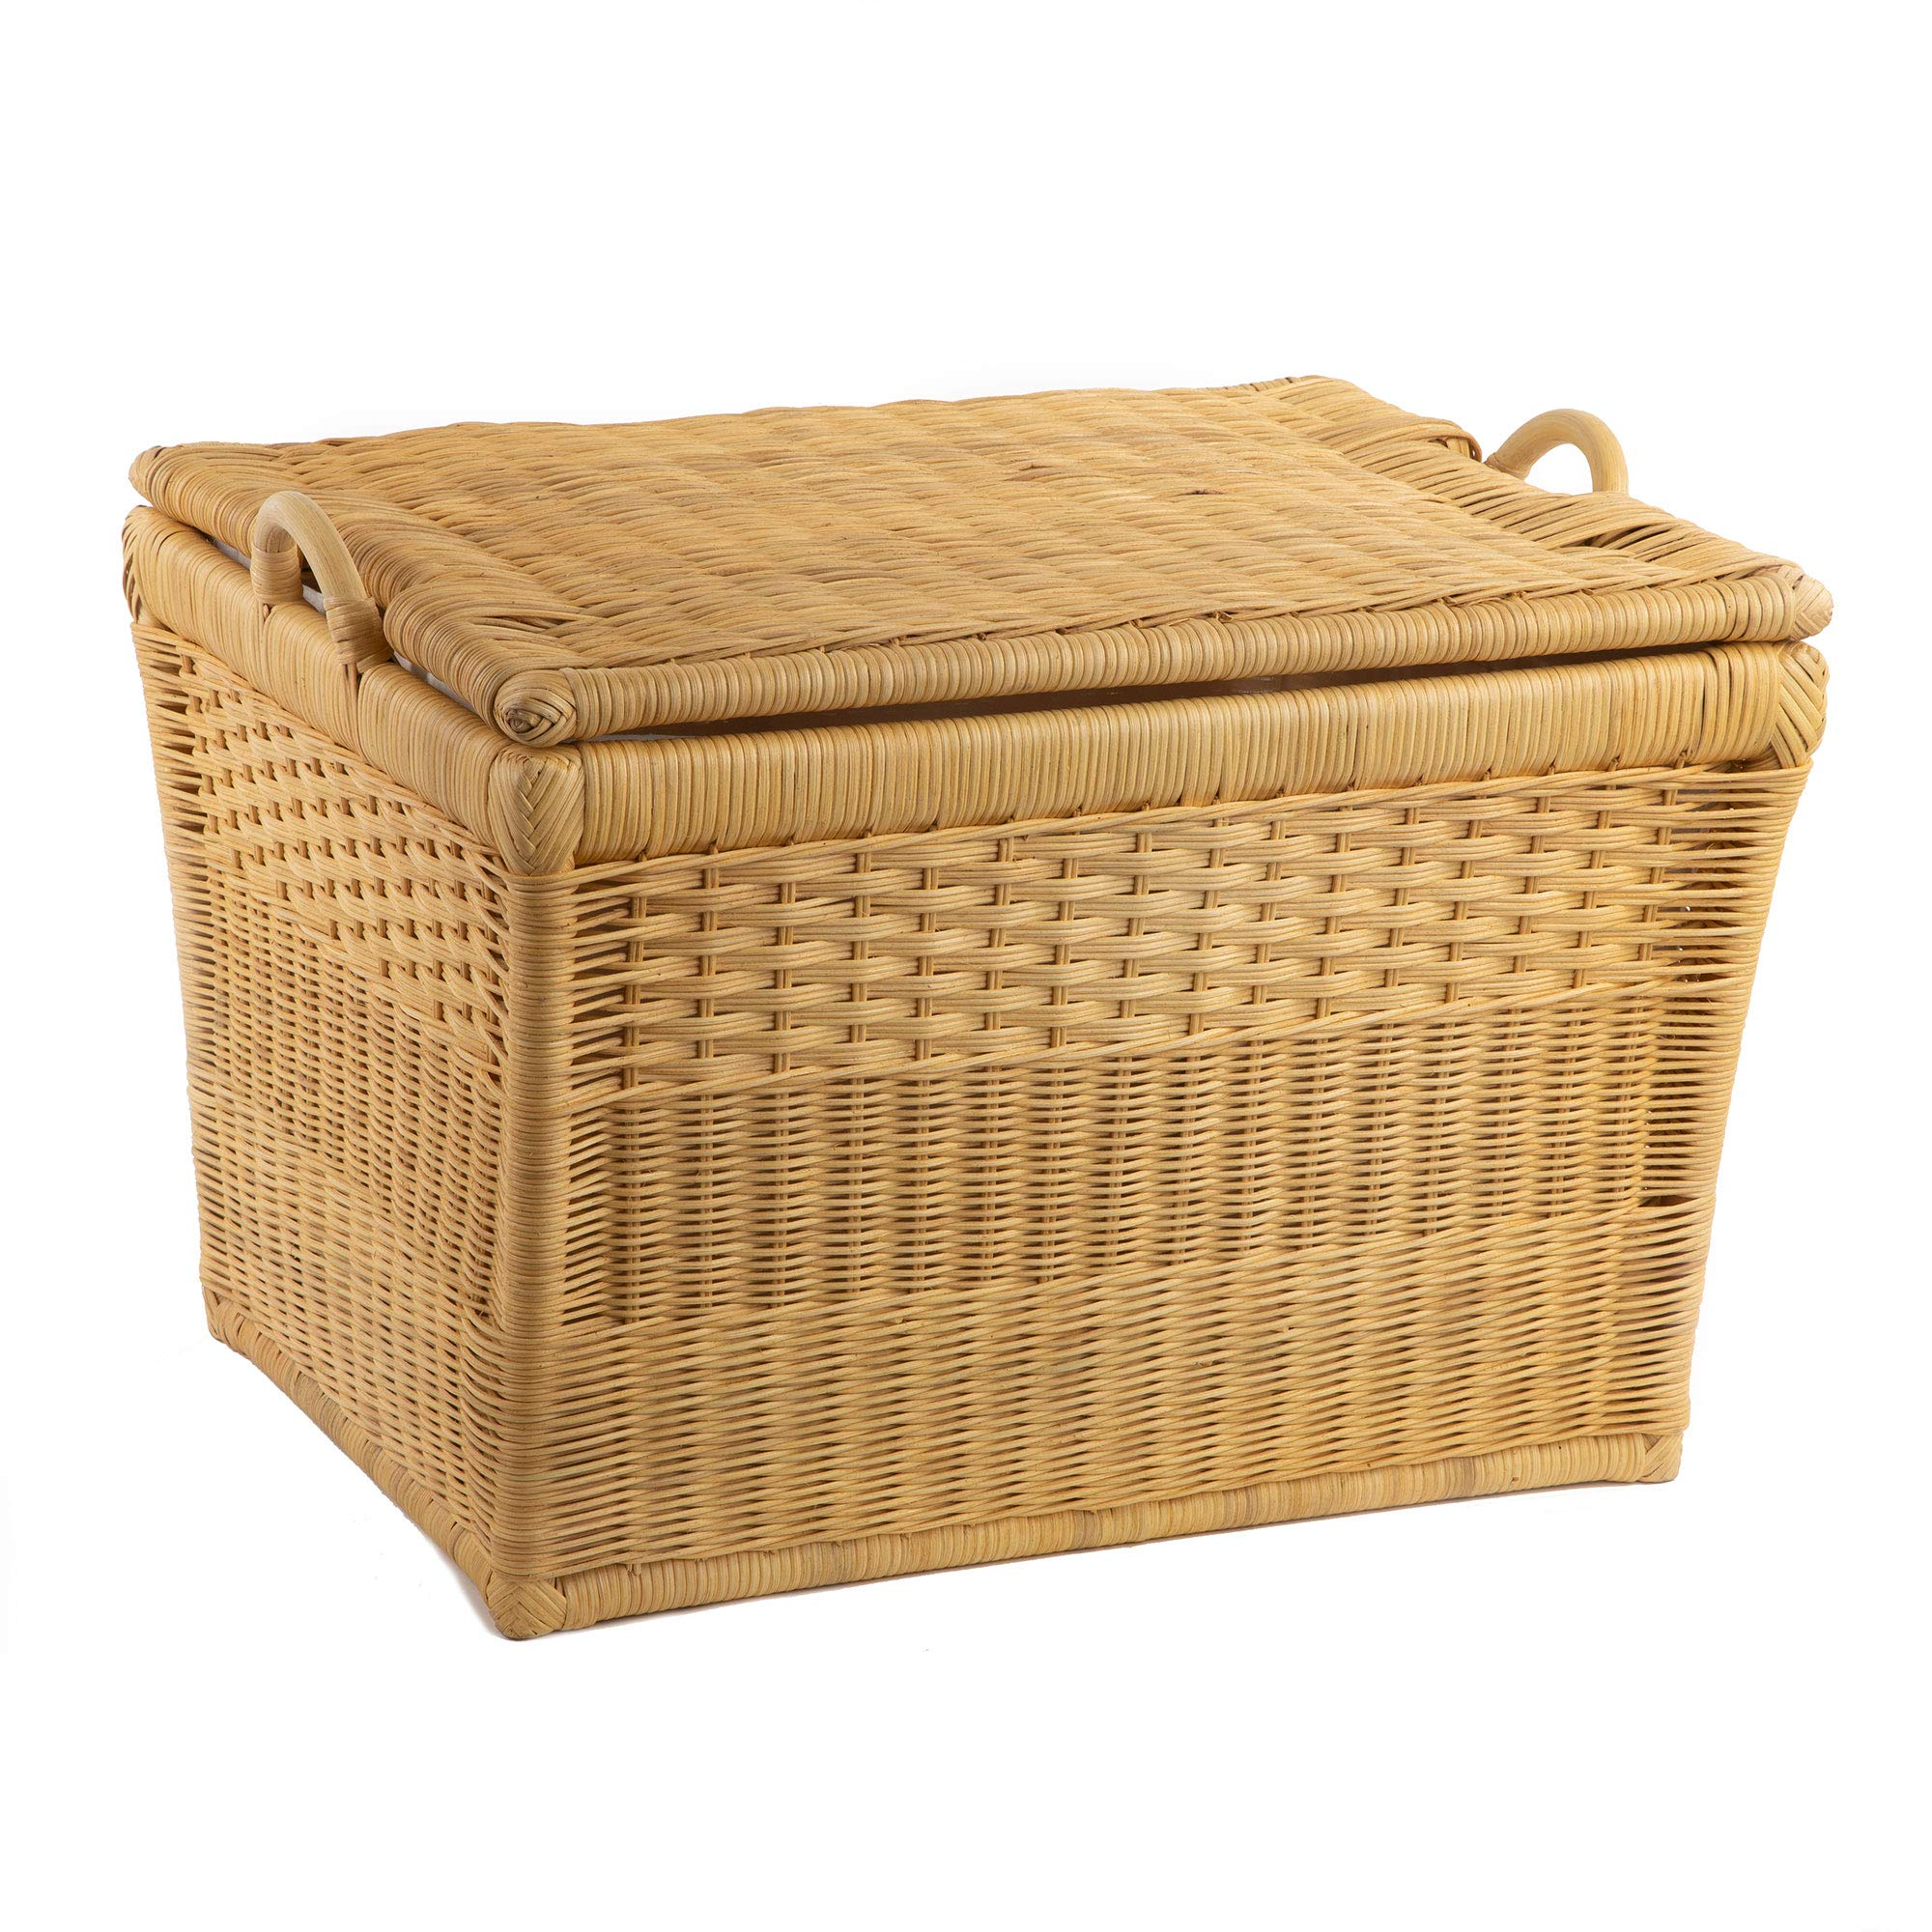 The Basket Lady Lift-off Lid Wicker Storage Basket, Large, Toasted Oat